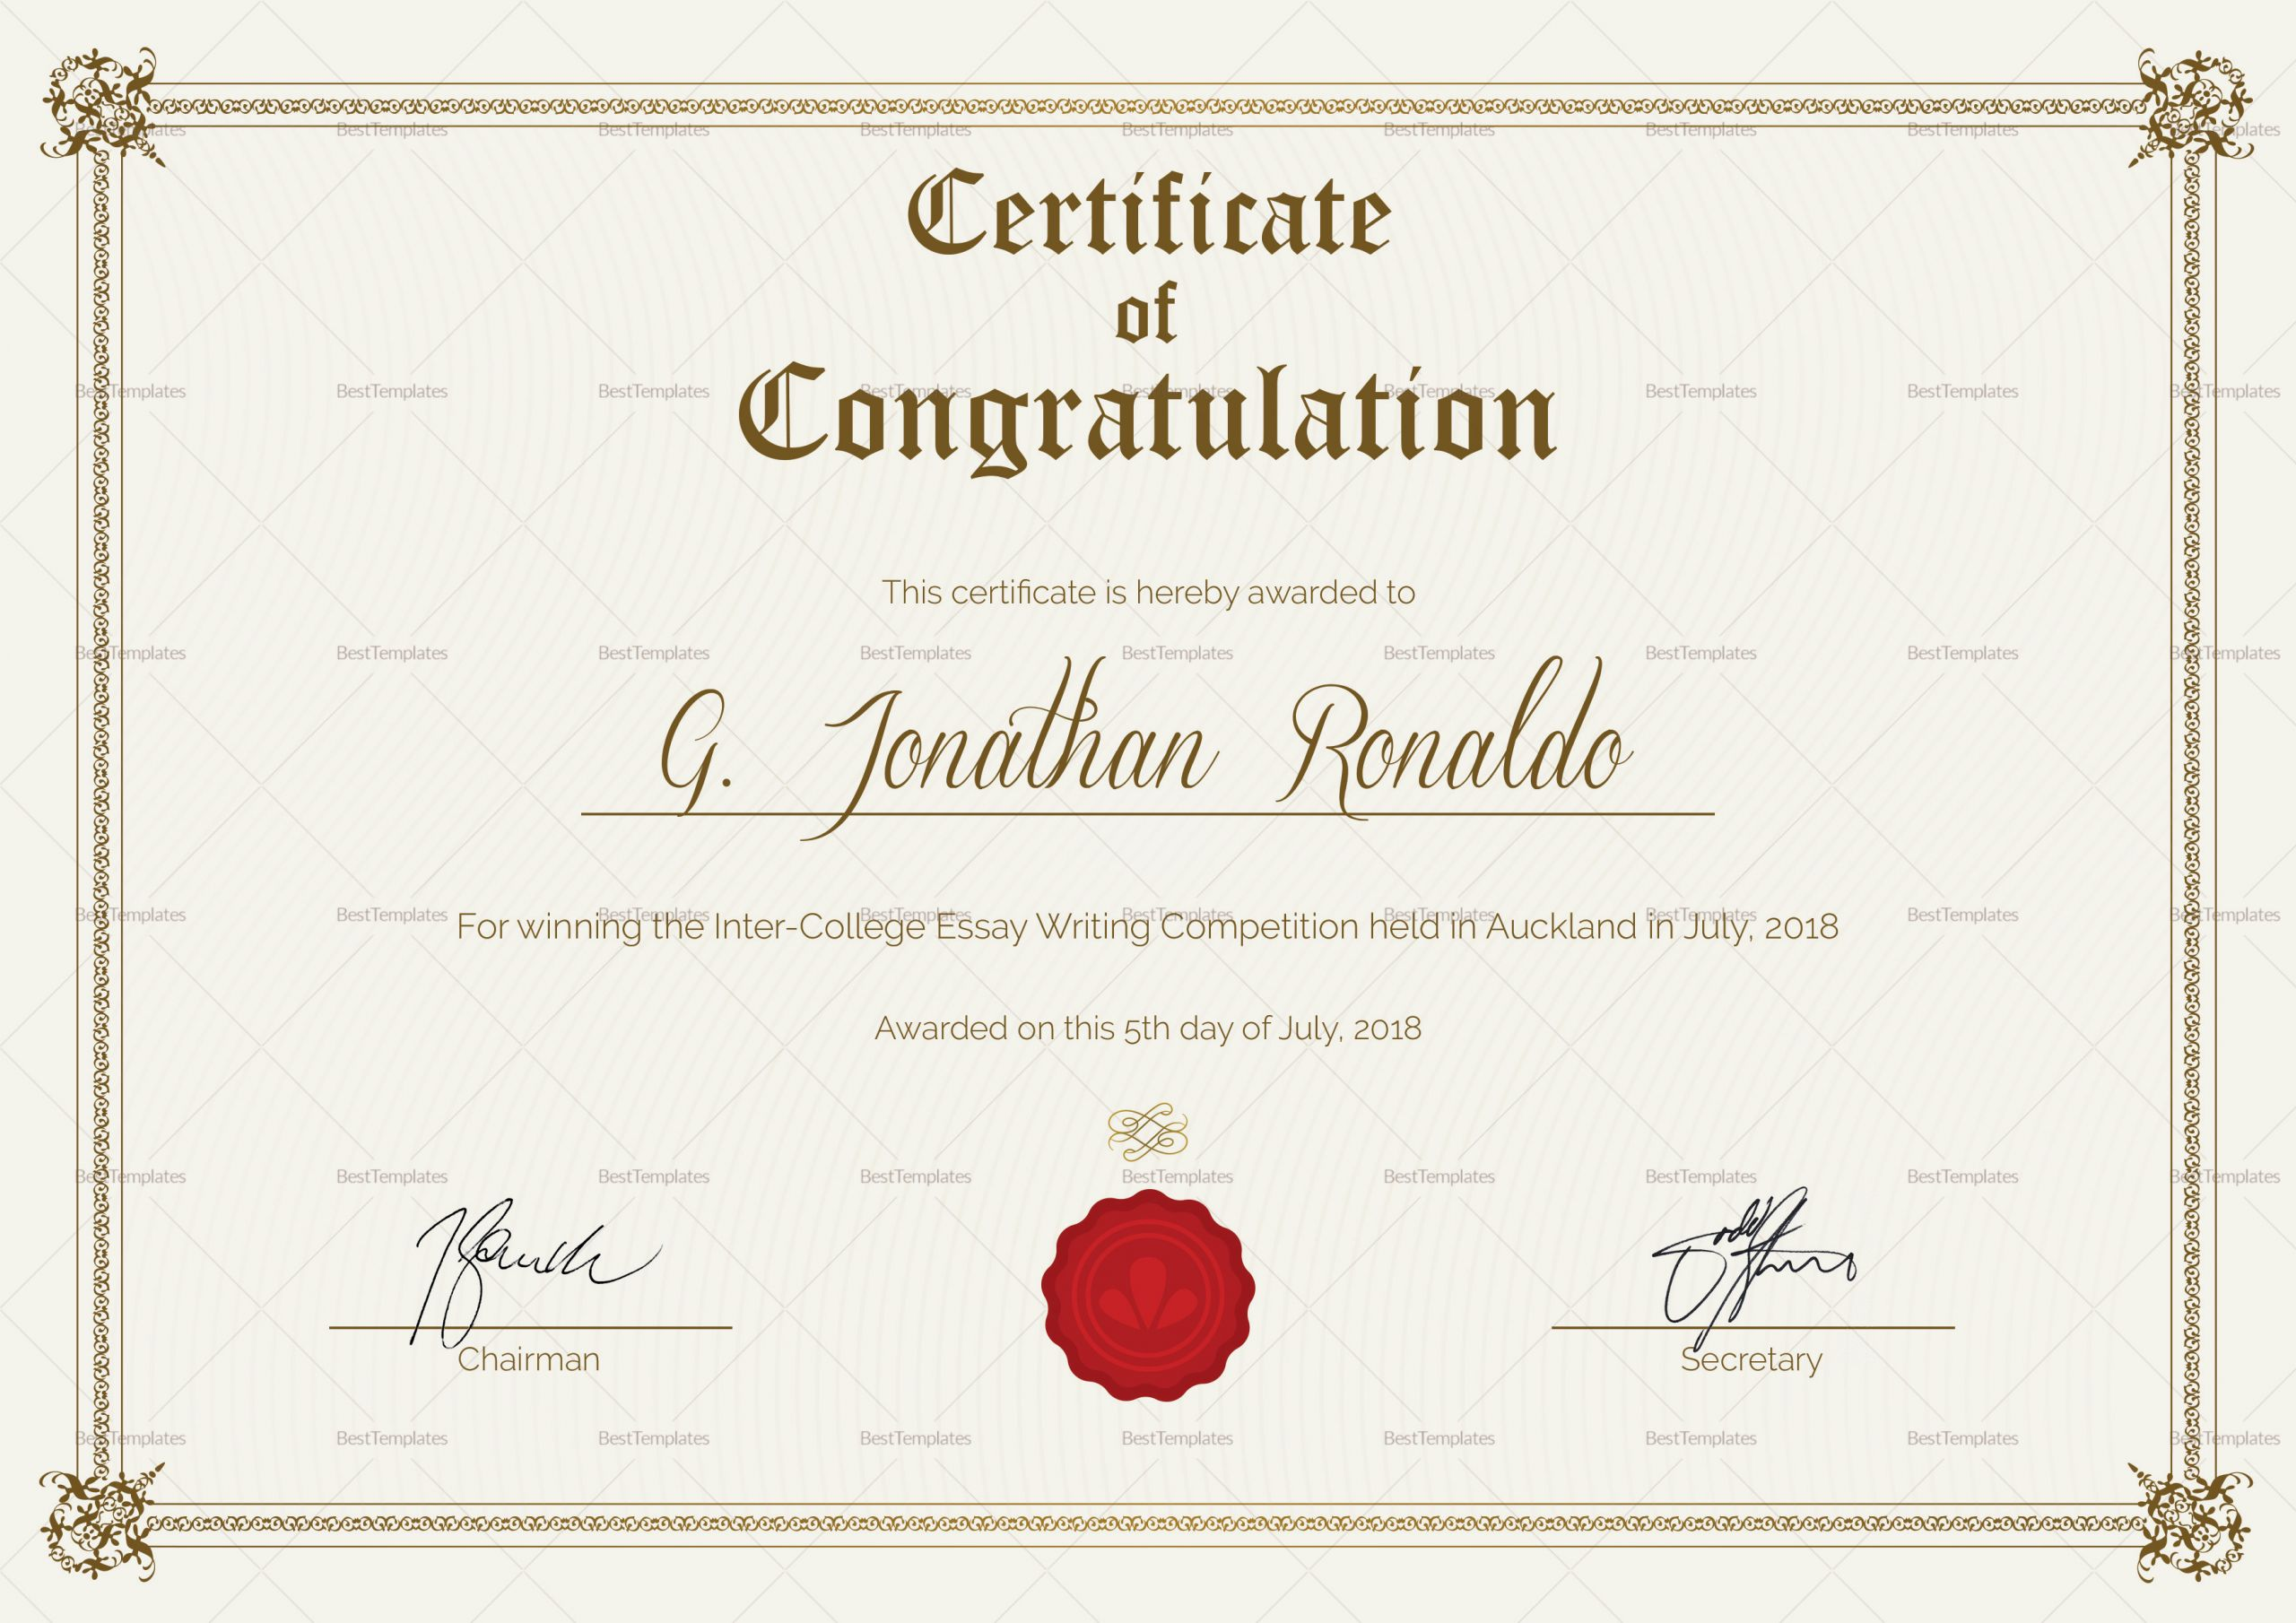 Congratulation Certificate Template Word New General format Congratulations Certificate Design Template